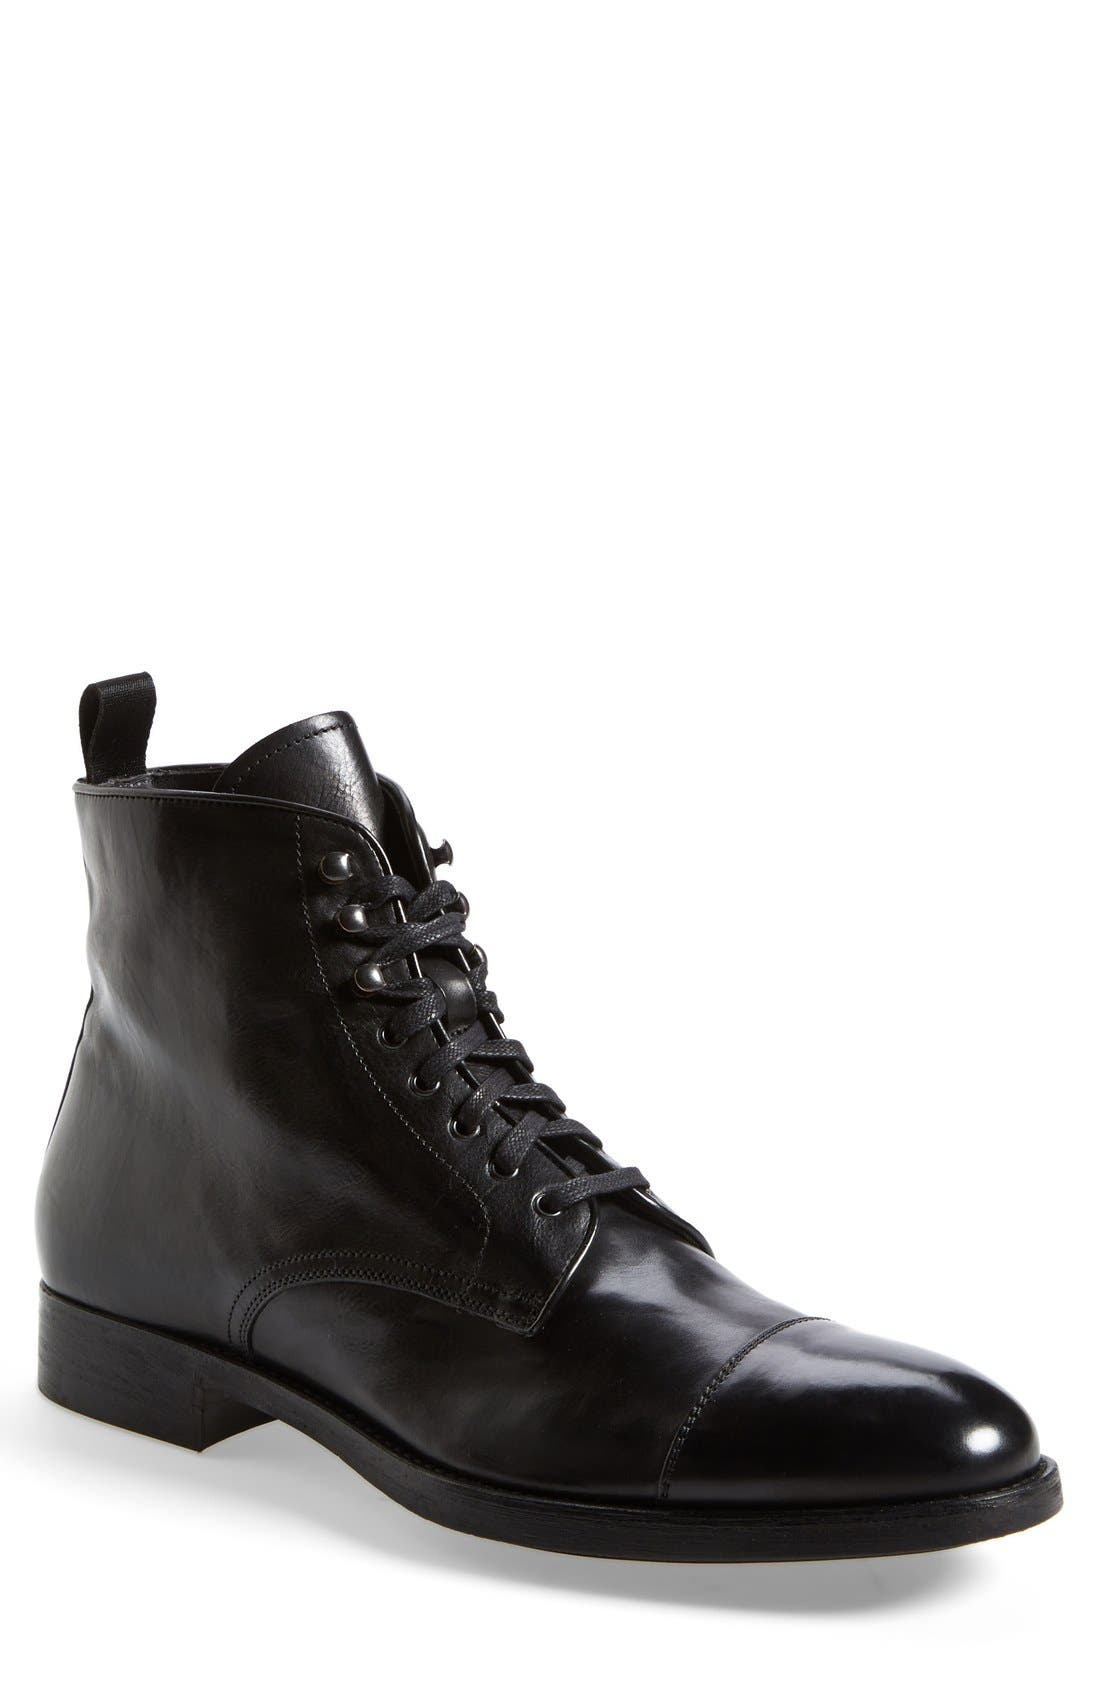 'Stallworth' Cap Toe Boot,                             Main thumbnail 1, color,                             Black Leather